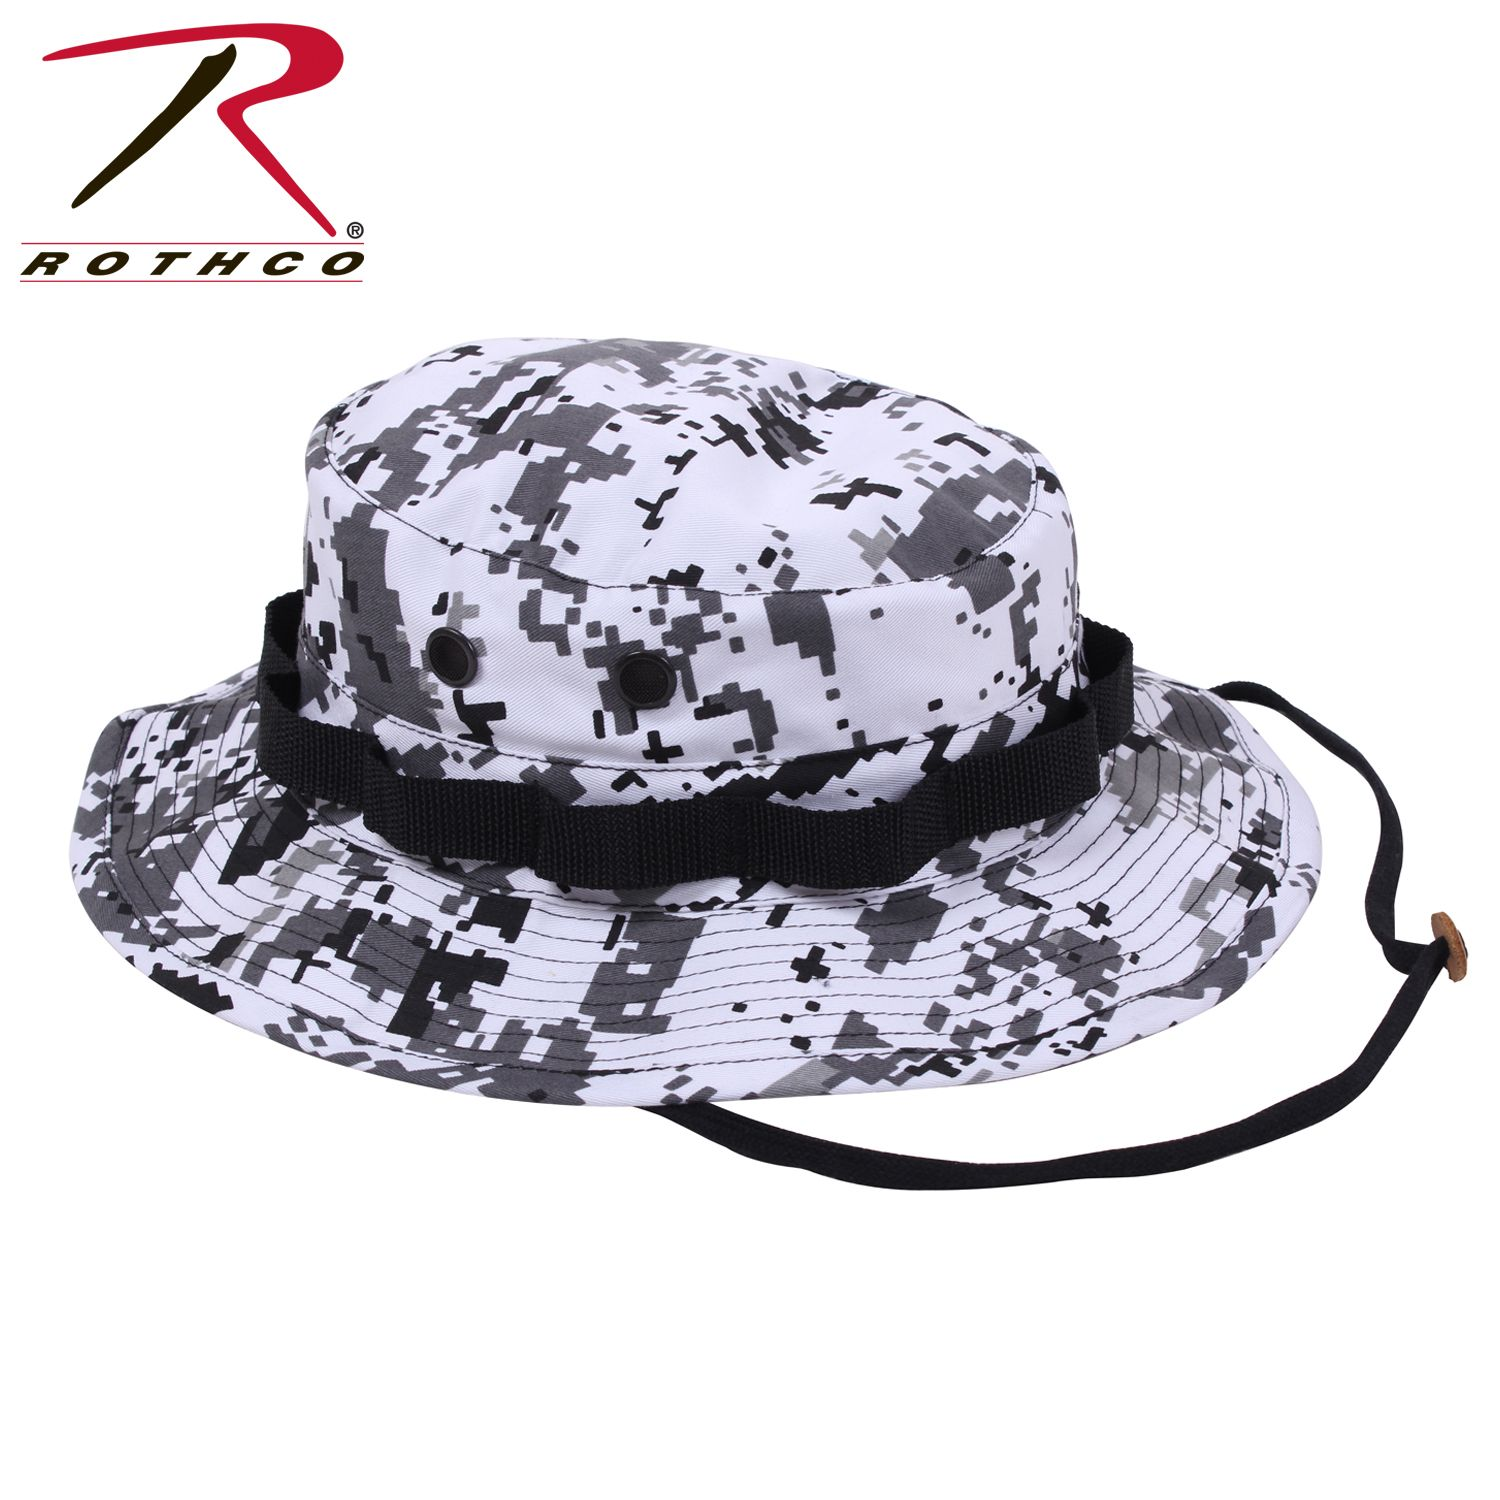 f36b3d30496 Rothco City Digital Camo Boonie Hat